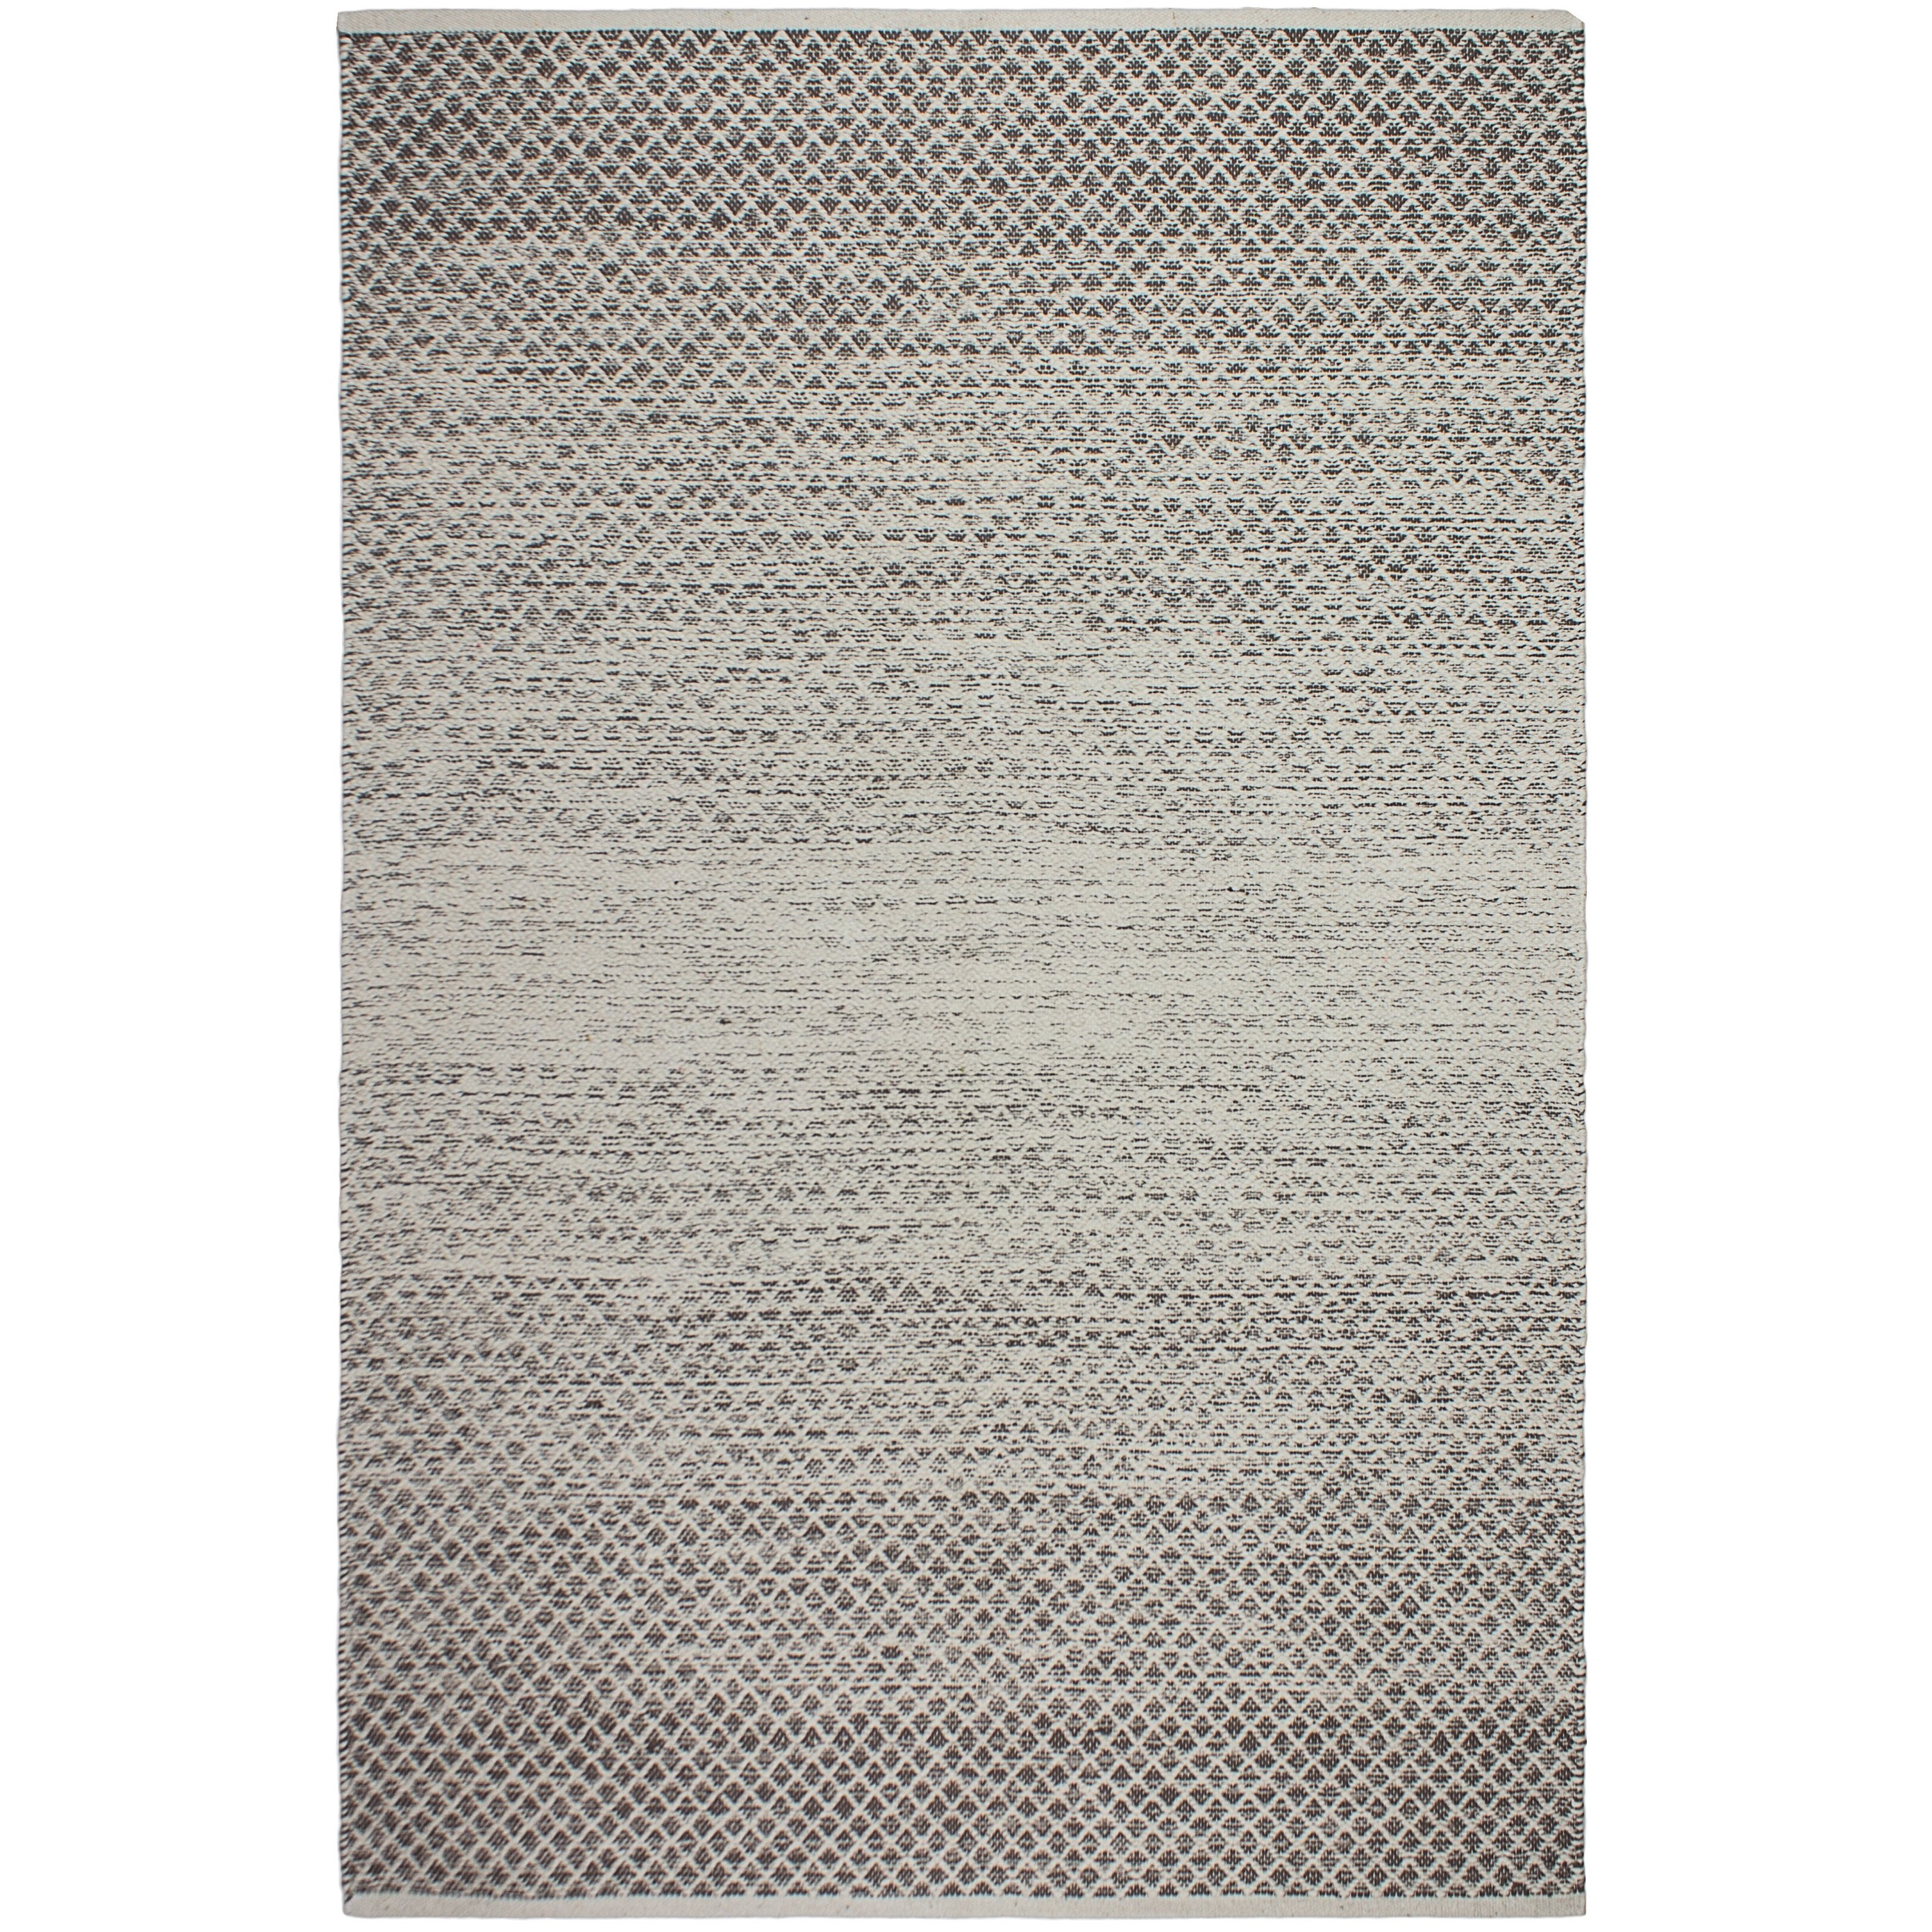 Area Rug In Bedroom Fab Habitat Estate Hand Woven Gray Area Rug Amp Reviews